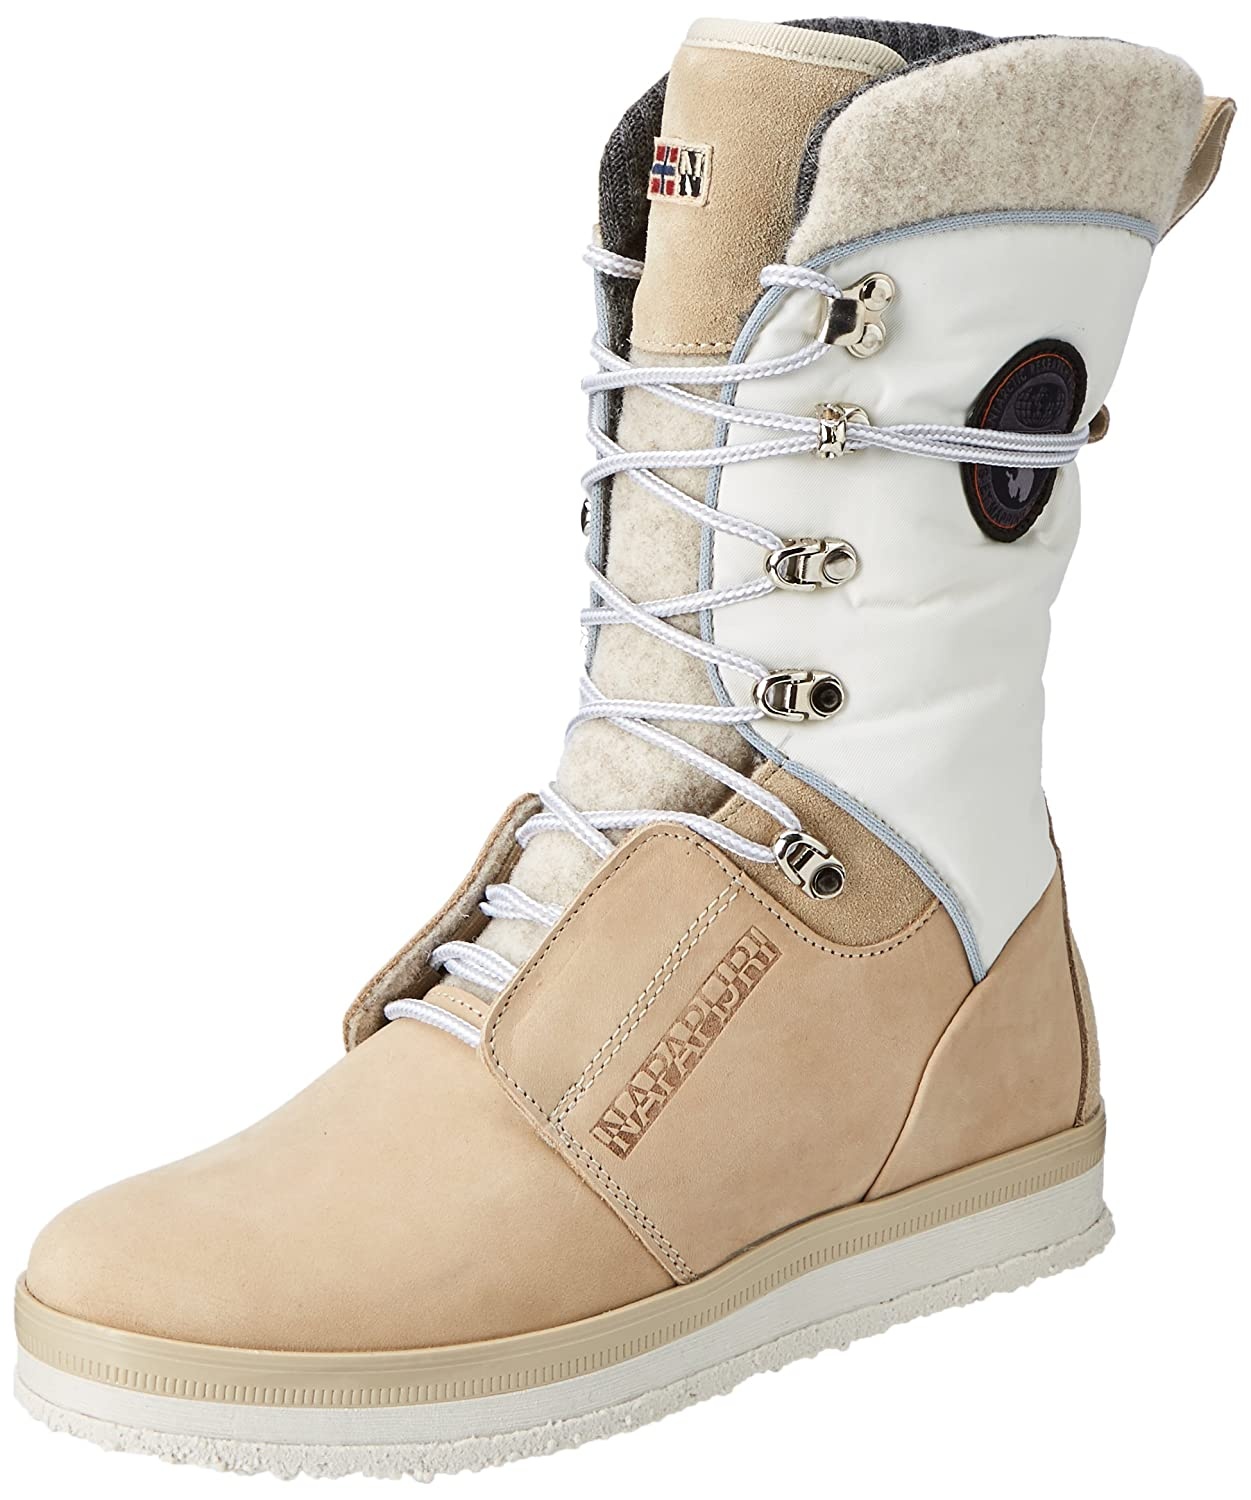 Clearance Official Site Discount Pictures Womens Gaby Snow Boots Napapijri jBrIc0mU